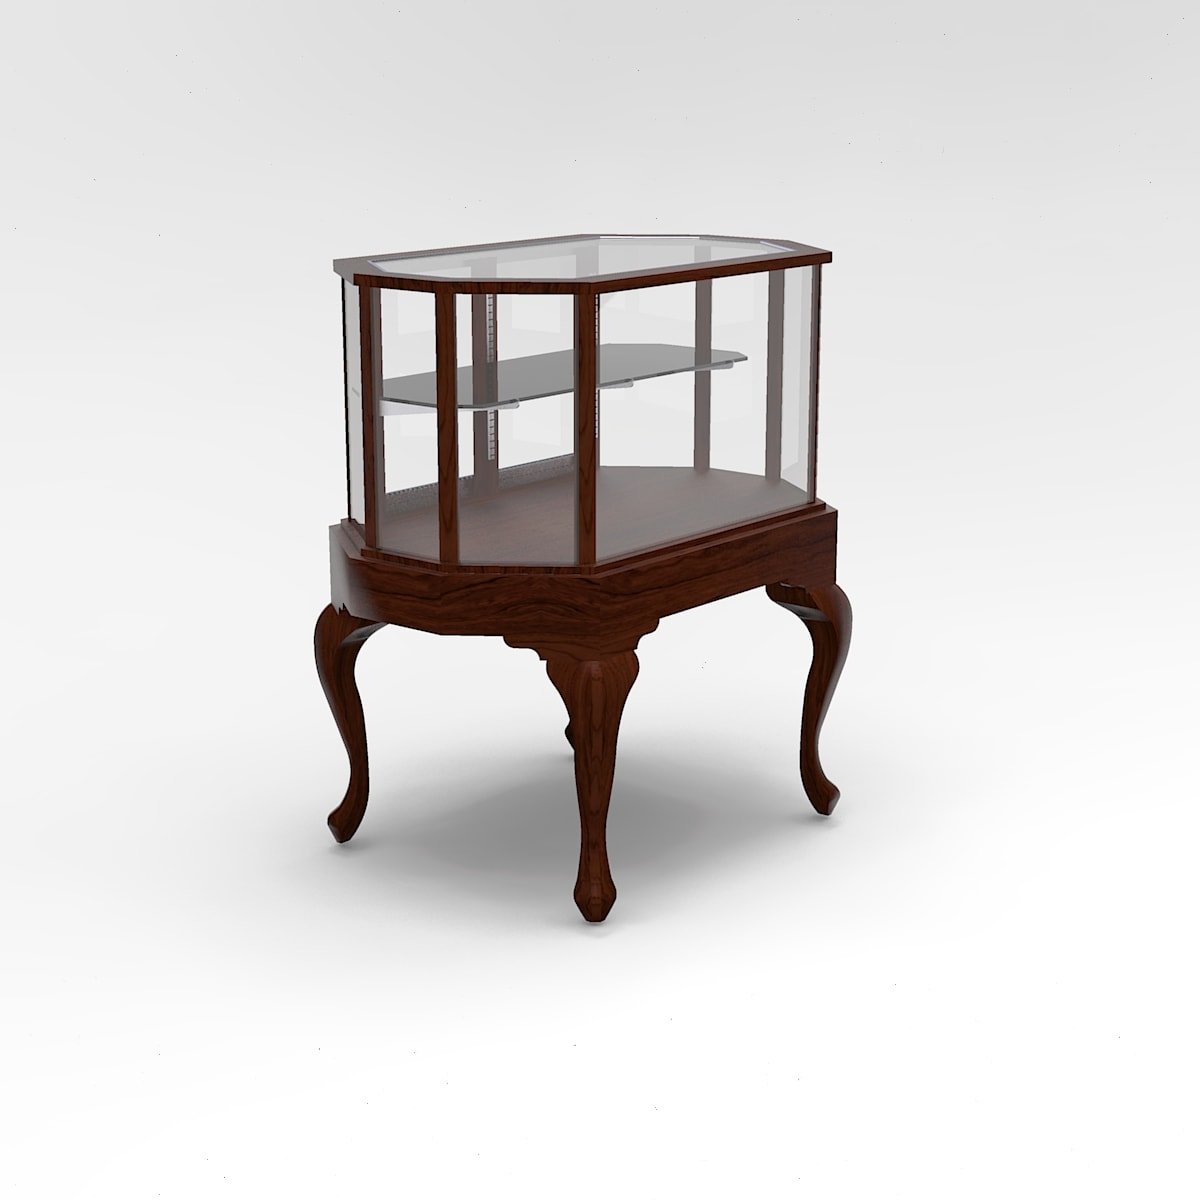 36 Inch Half Vision Queen Anne Leg Octagon Horizontal Display Case to Purchase